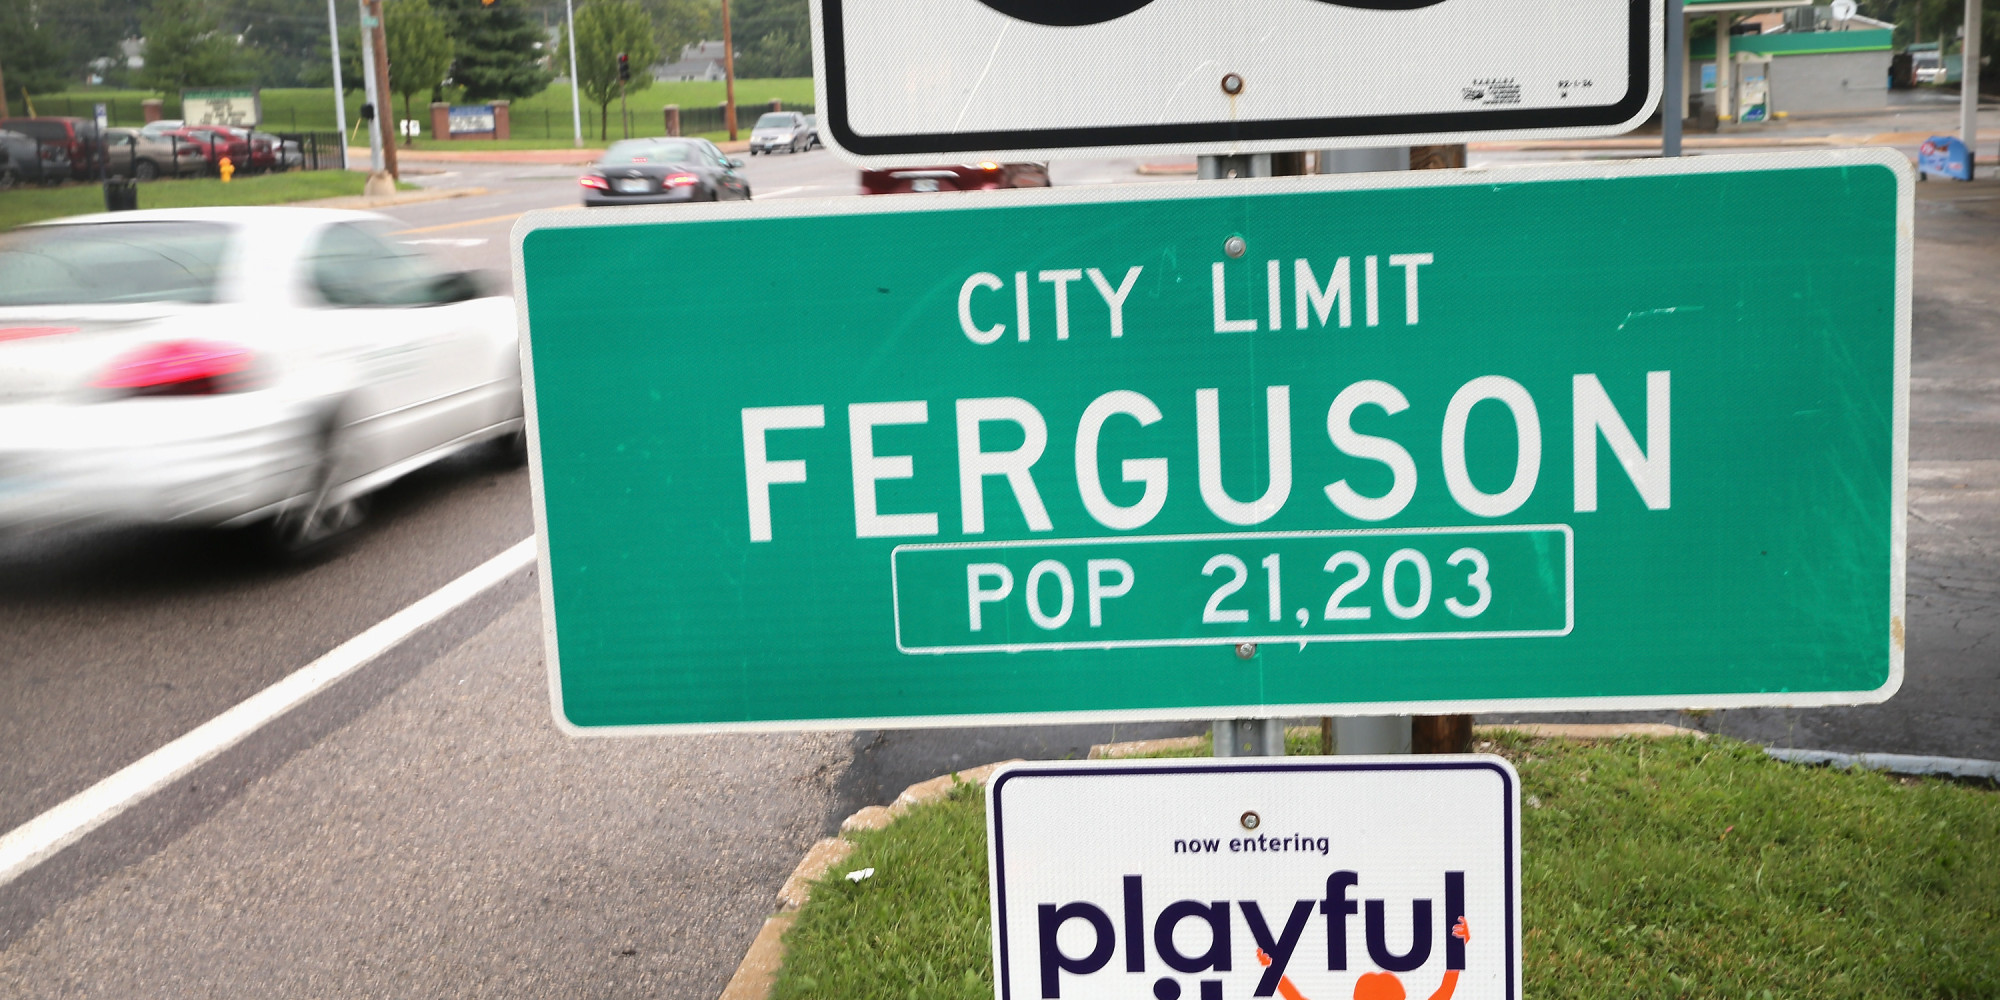 FERGUSON, MO - SEPTEMBER 10: A sign welcomes visitors to the city on September 10, 2014 in Ferguson, Missouri. The suburban St. Louis city is still recovering from violent protests that erupted after teenager Michael Brown was shot and killed by Ferguson police officer Darren Wilson about a month ago. (Photo by Scott Olson/Getty Images)